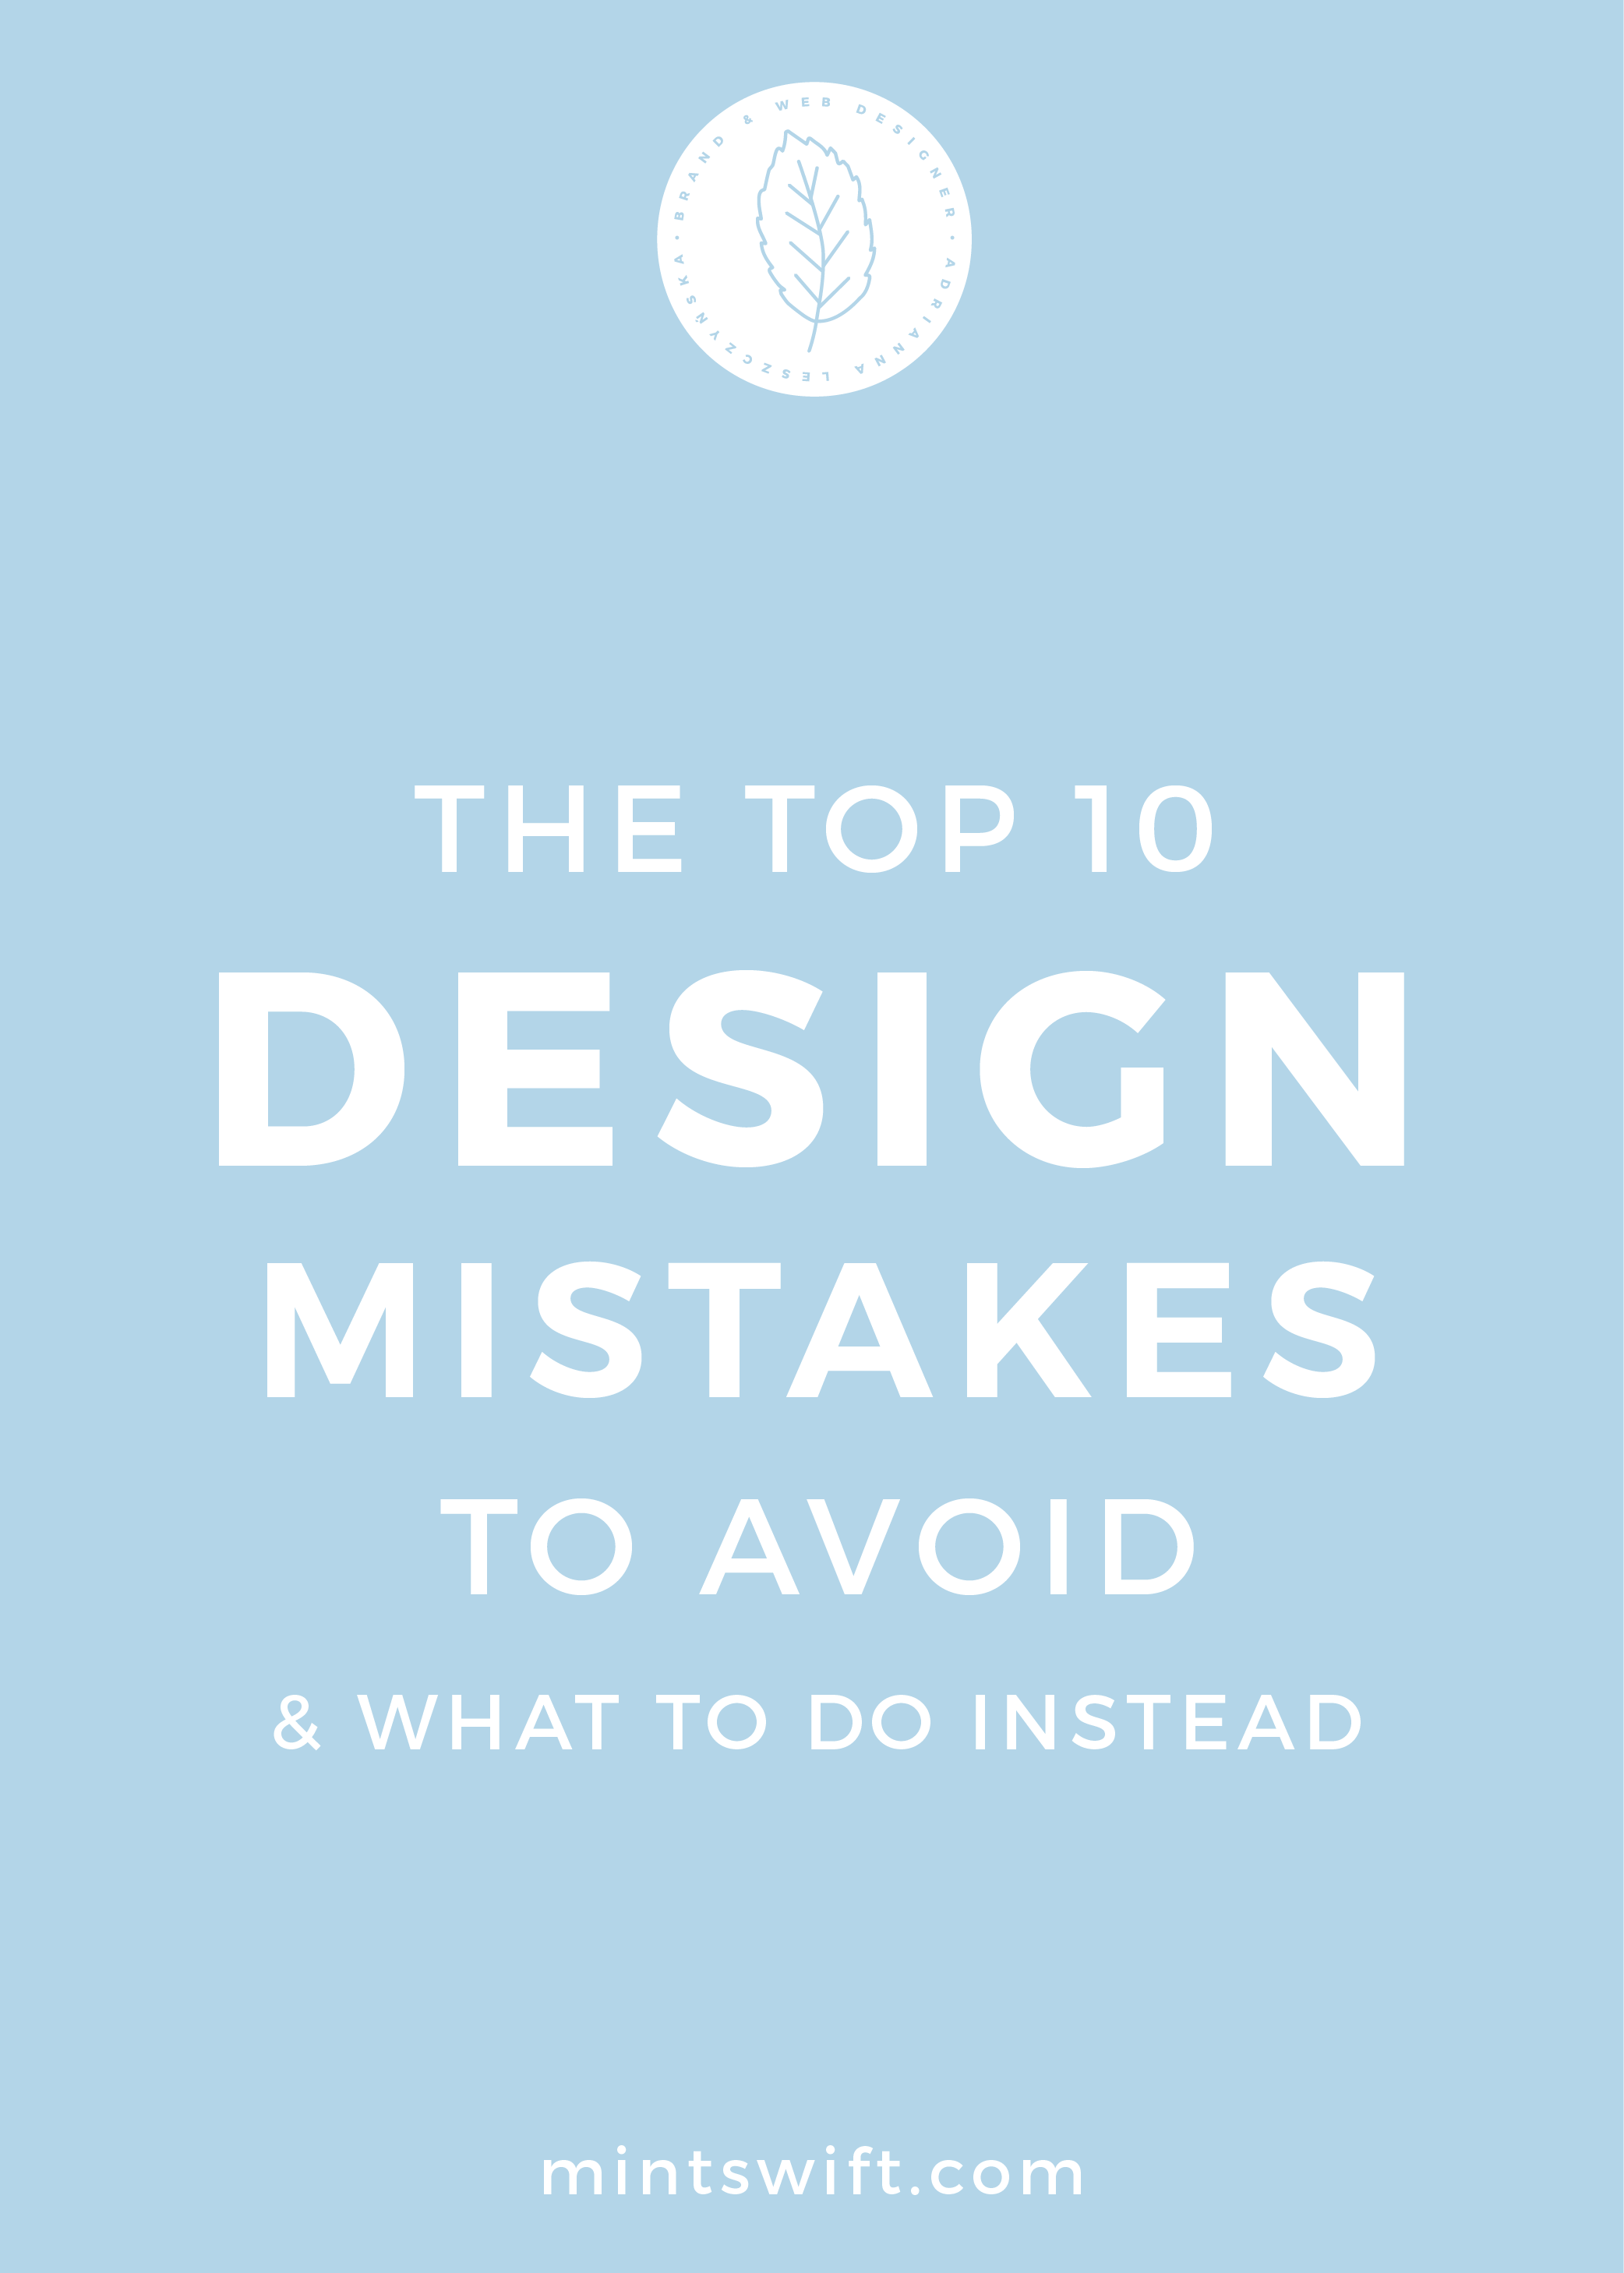 The Top 10 Design Mistakes to Avoid And What to Do Instead - MintSwift